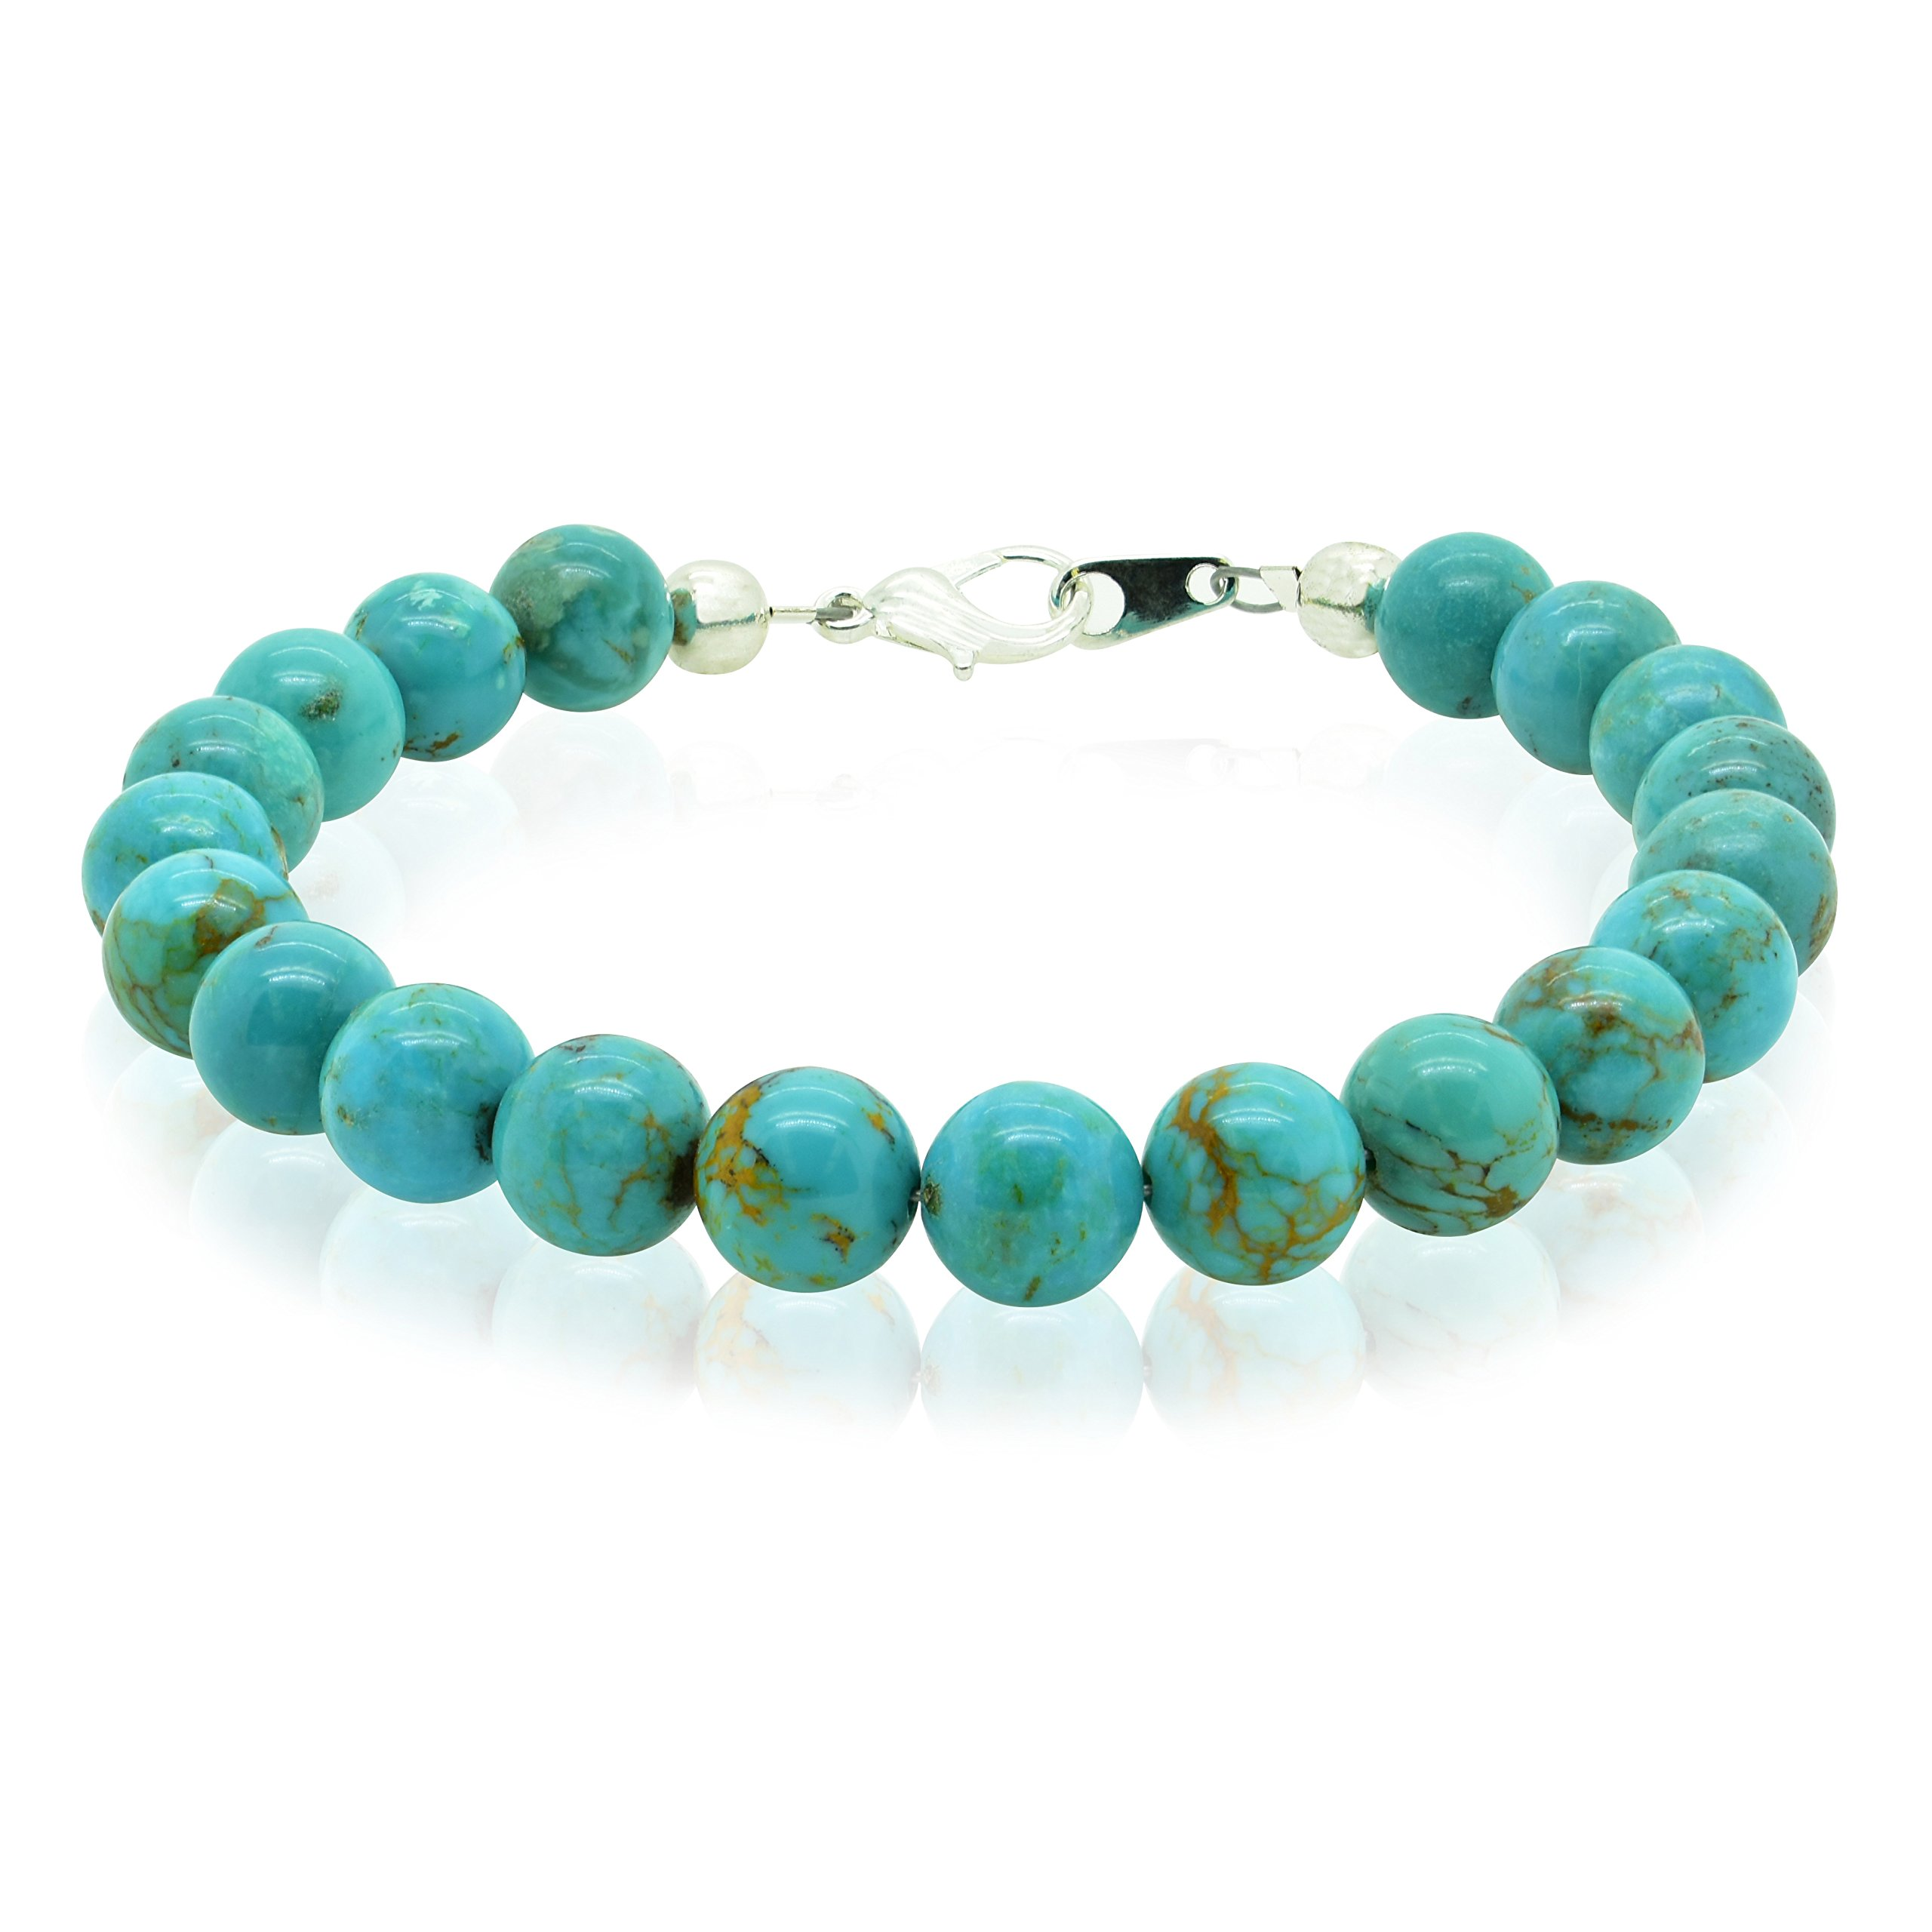 Bluejoy Jewelry Genuine Natural Turquoise Bracelet 8mm Perfect Round Beads with Lobster Clasp